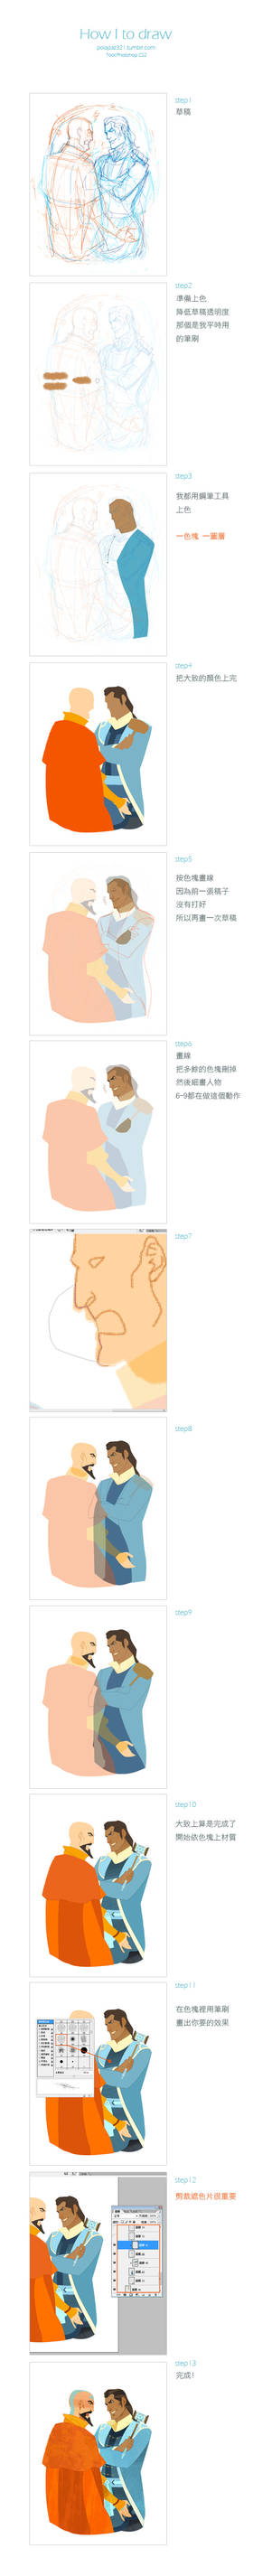 How I to draw